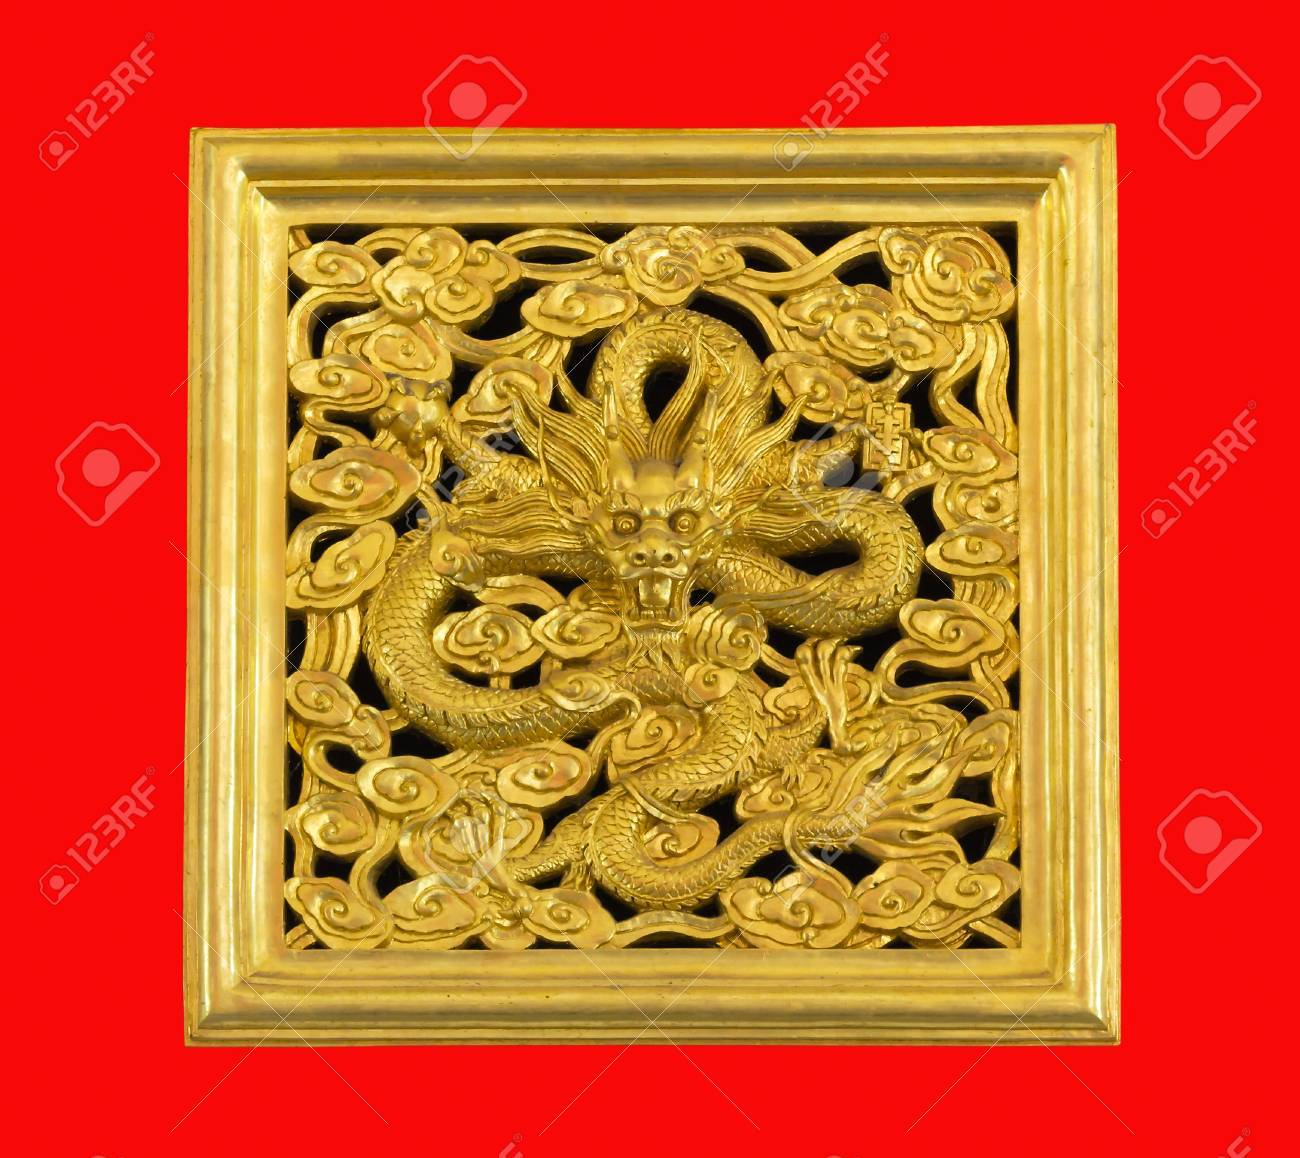 Ancient statue of golden dragon on red background Stock Photo - 14160714